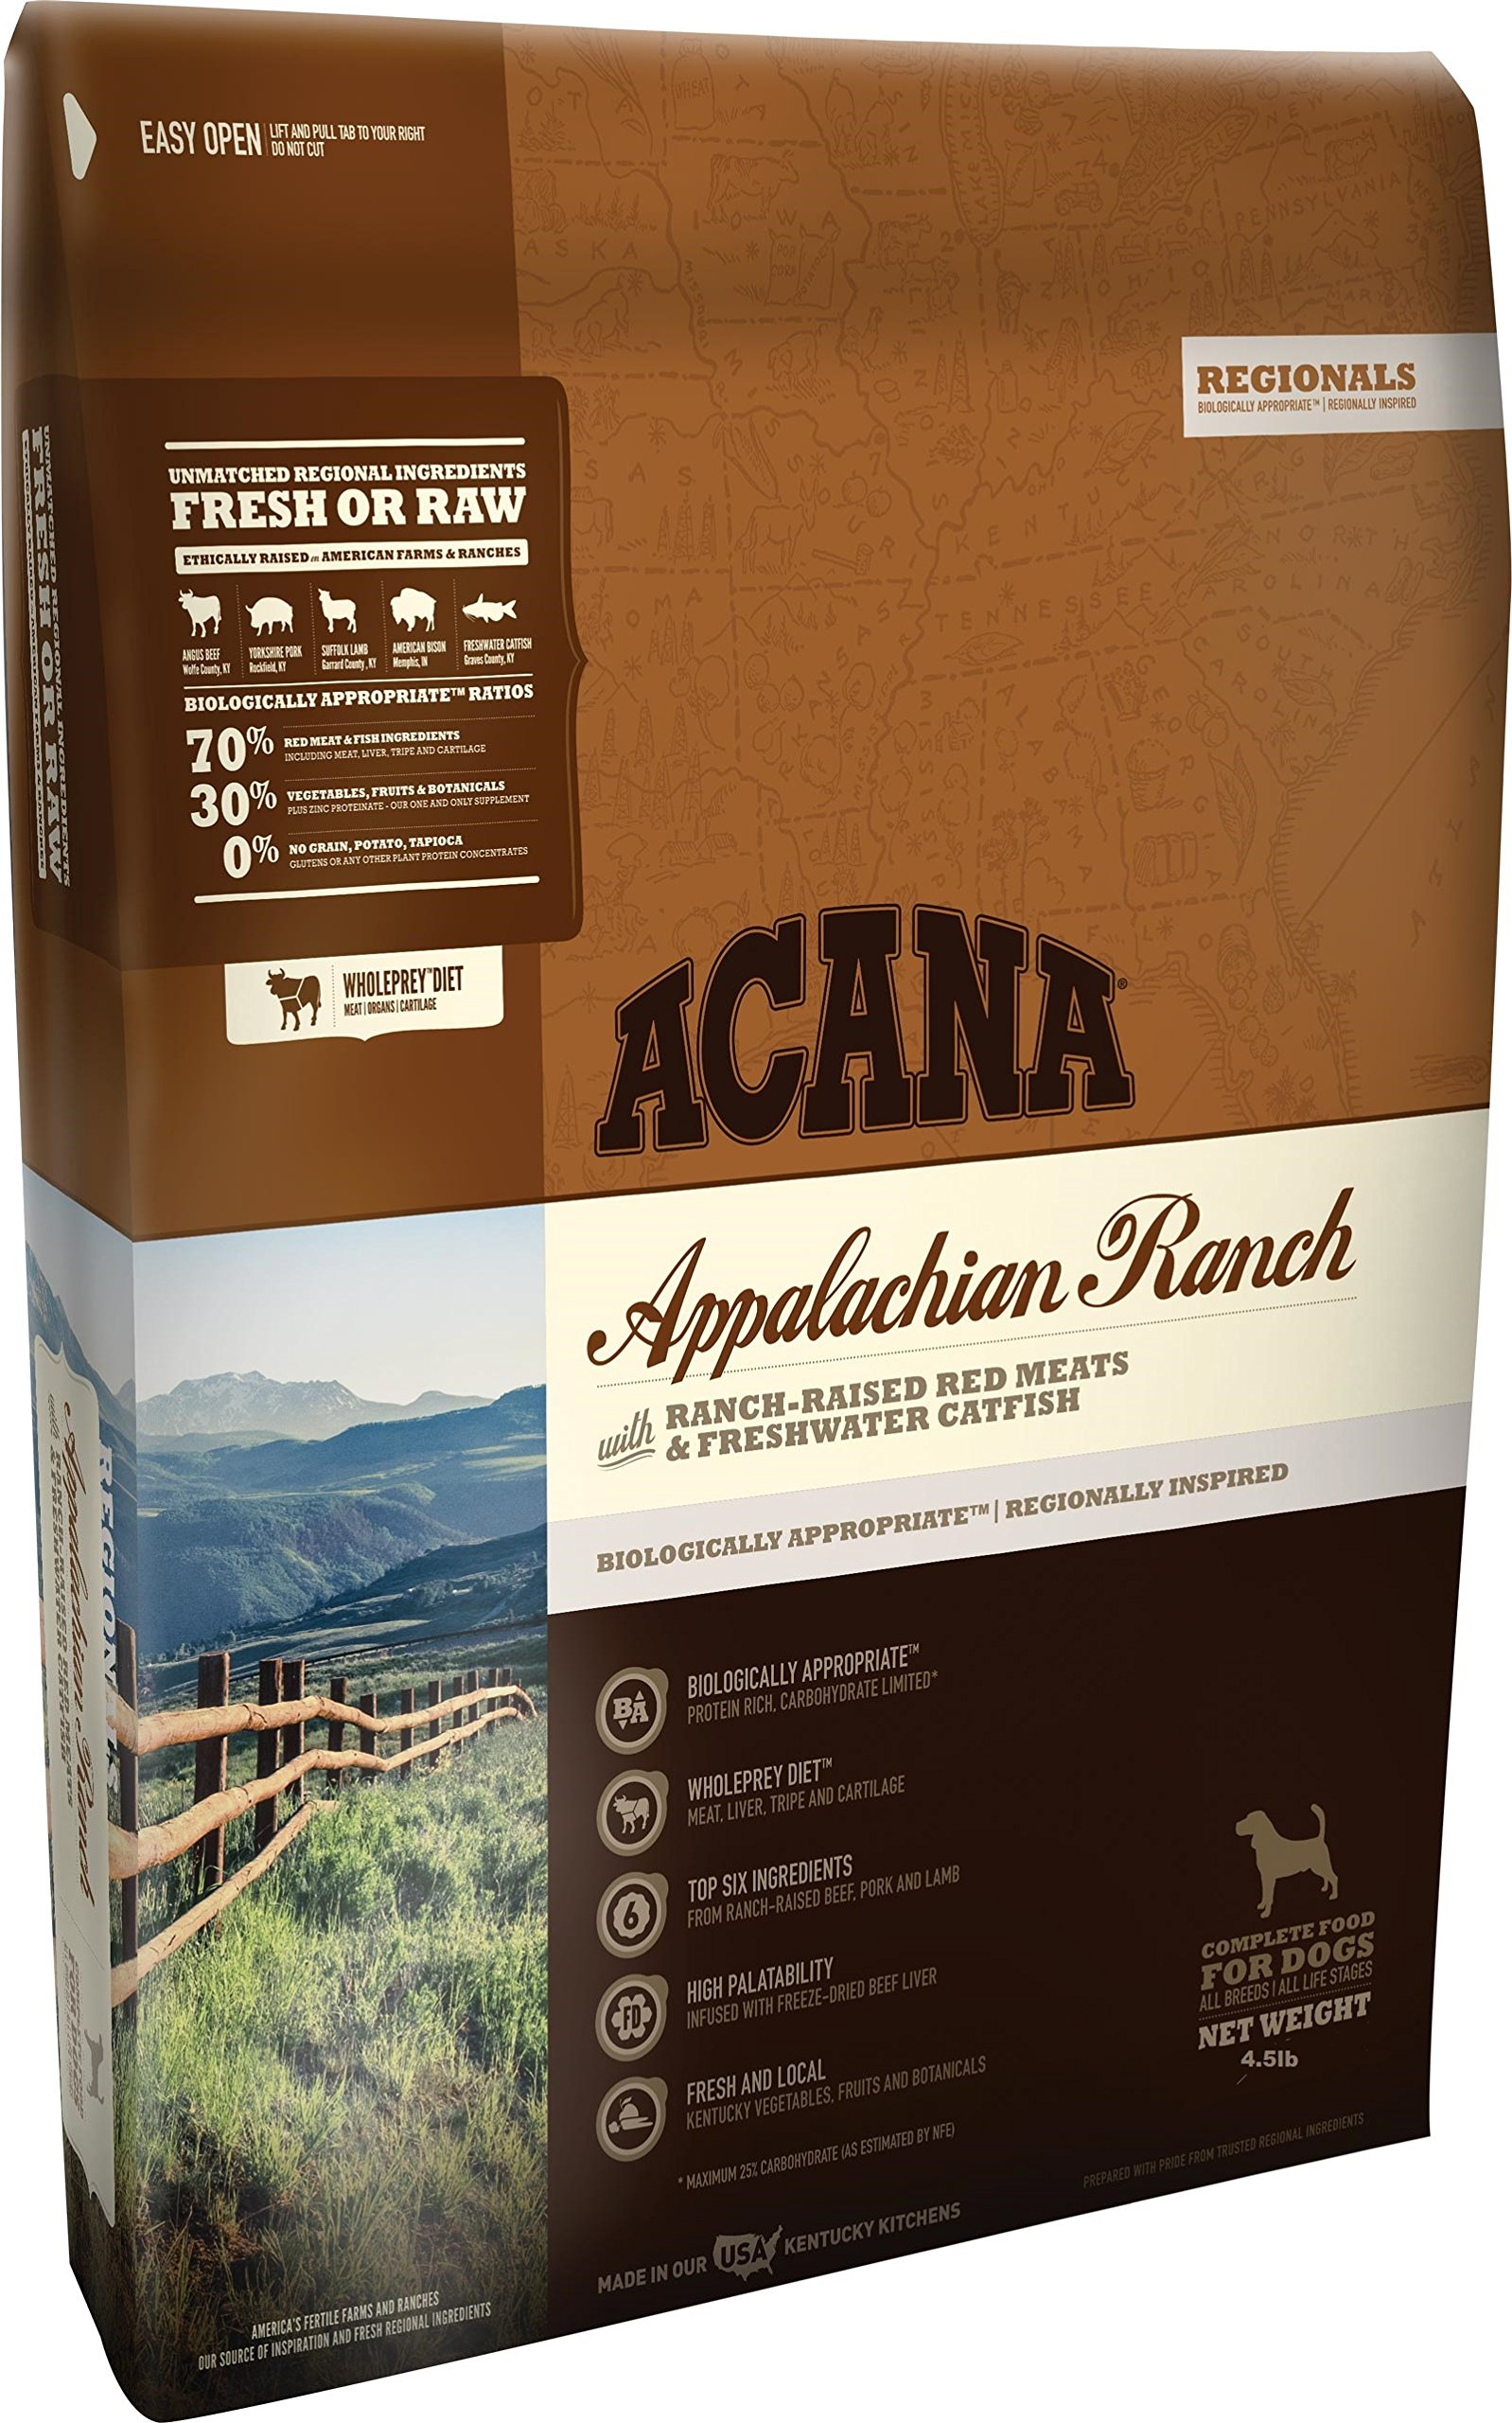 ACANA Regionals Appalachian Ranch for Dogs, 4.5 Pound Bag